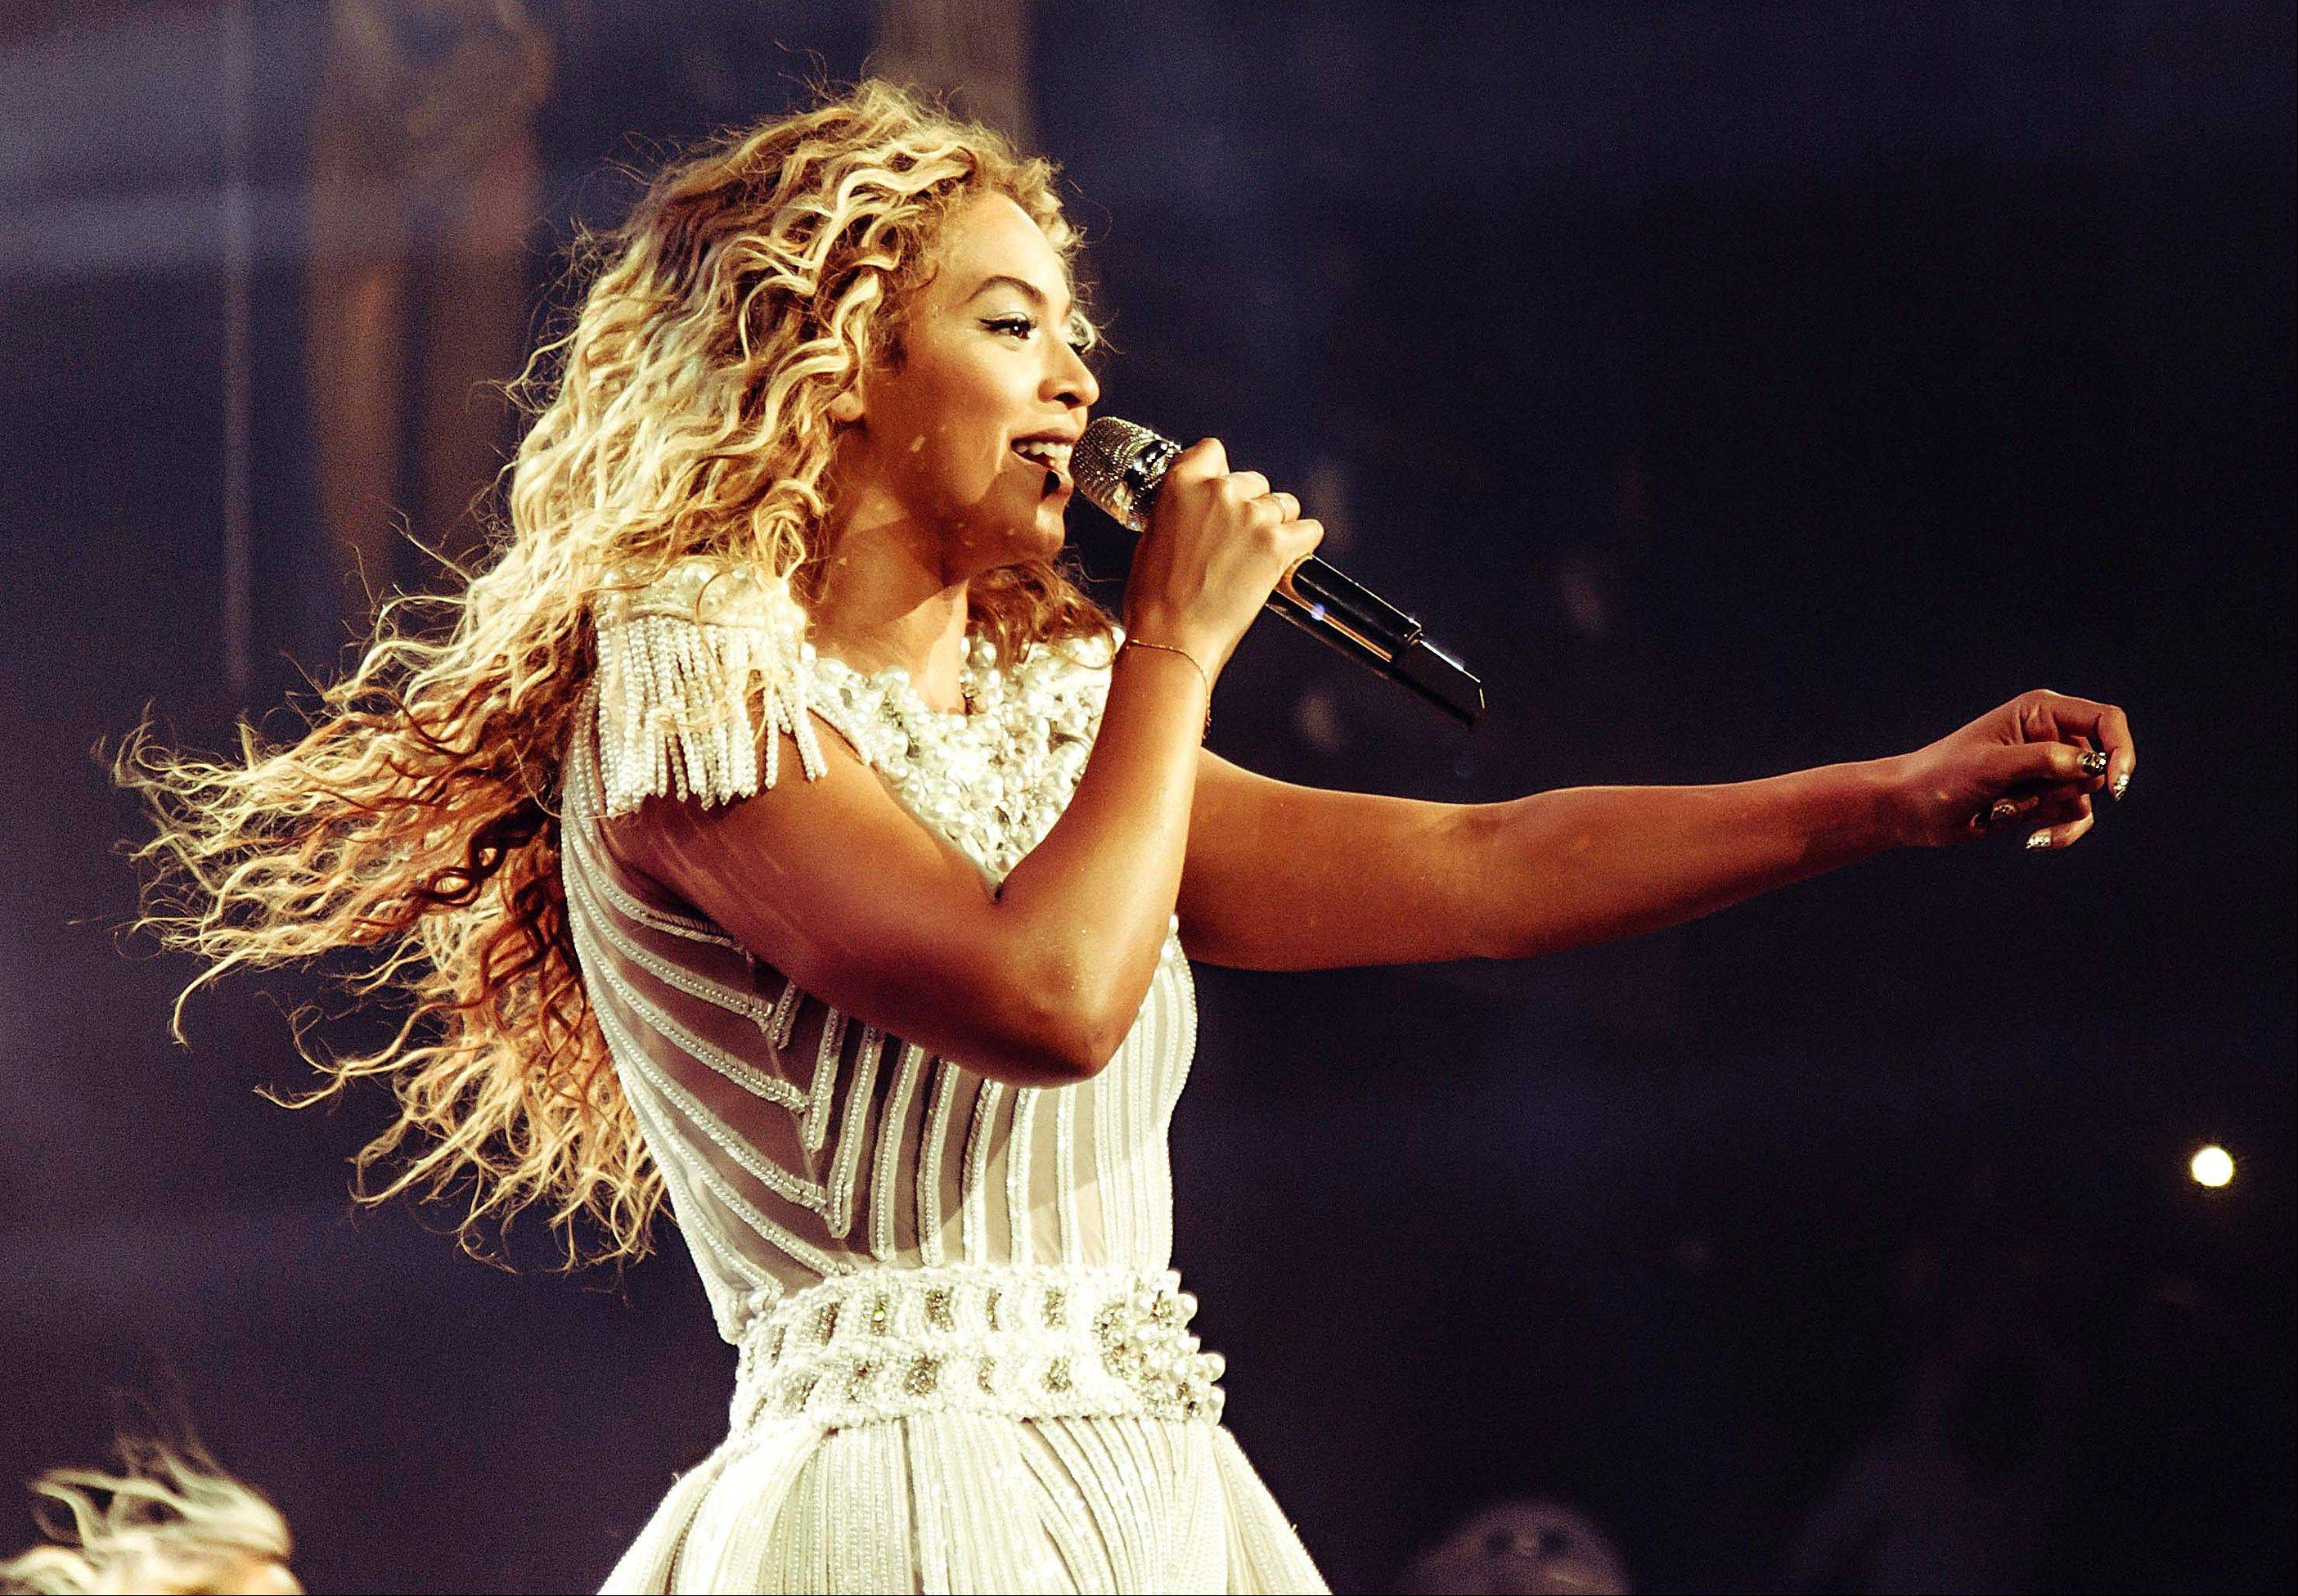 Beyonce called for a moment of silence for Trayvon Martin during a concert just hours after George Zimmerman was found not guilty by a Florida jury on Saturday. After asking the crowd to be silent a moment, she sang the chorus of �I Will Always Love You,� a song written by country music star Dolly Parton and brought to a global audience by the late Whitney Houston.